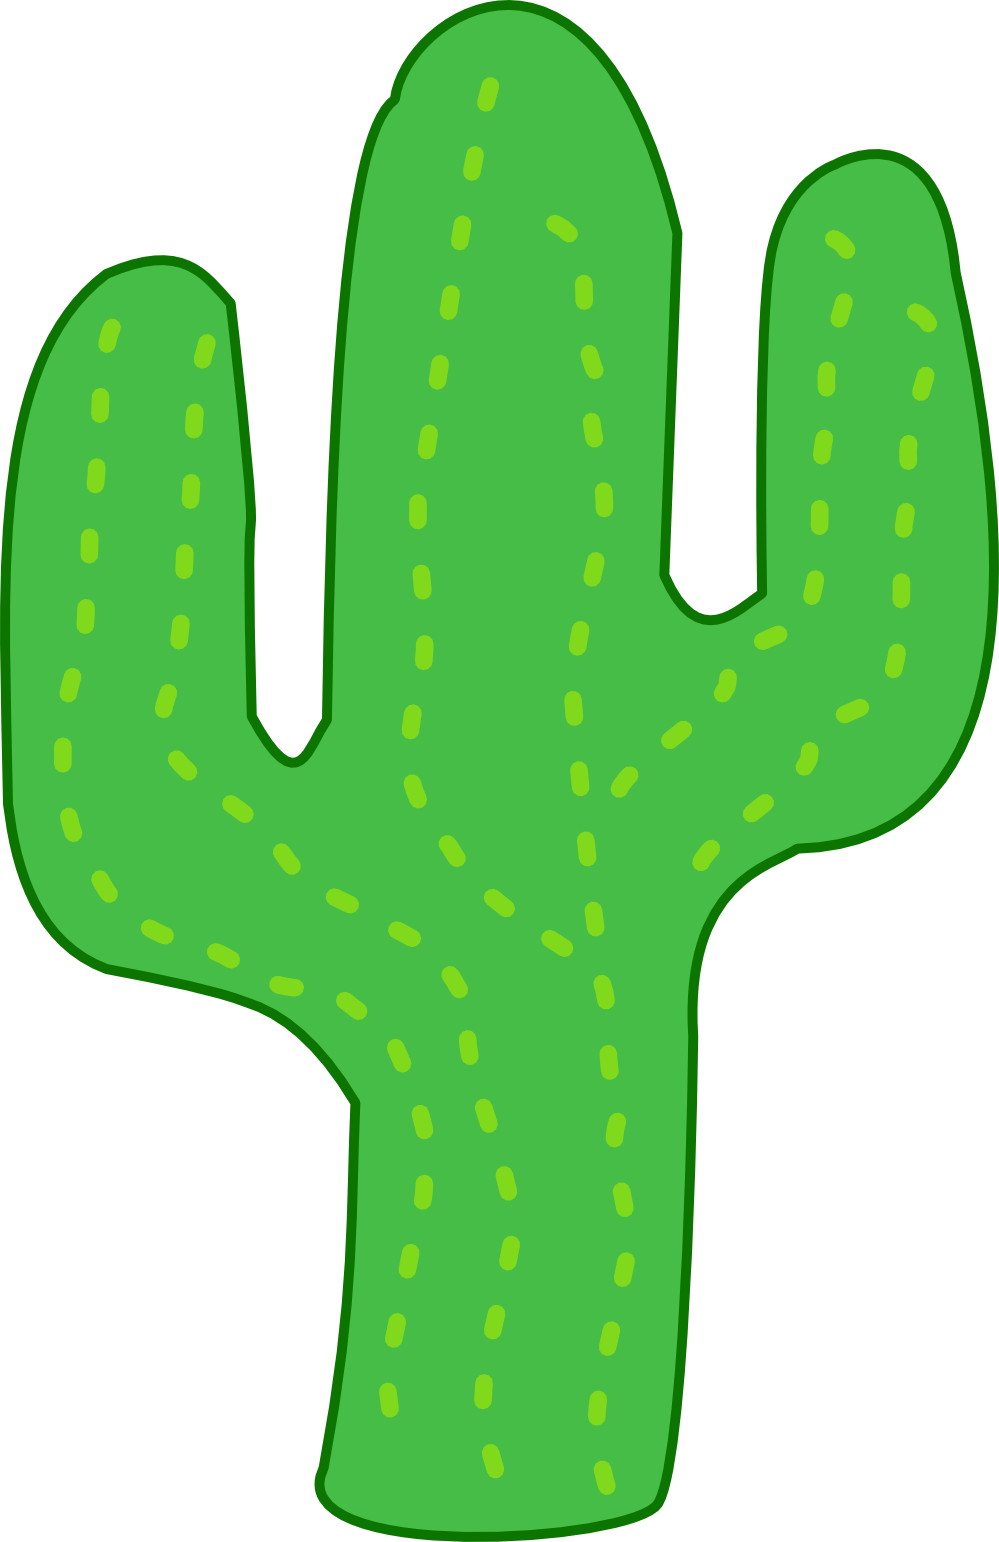 Free Cactus in the Desert Cli